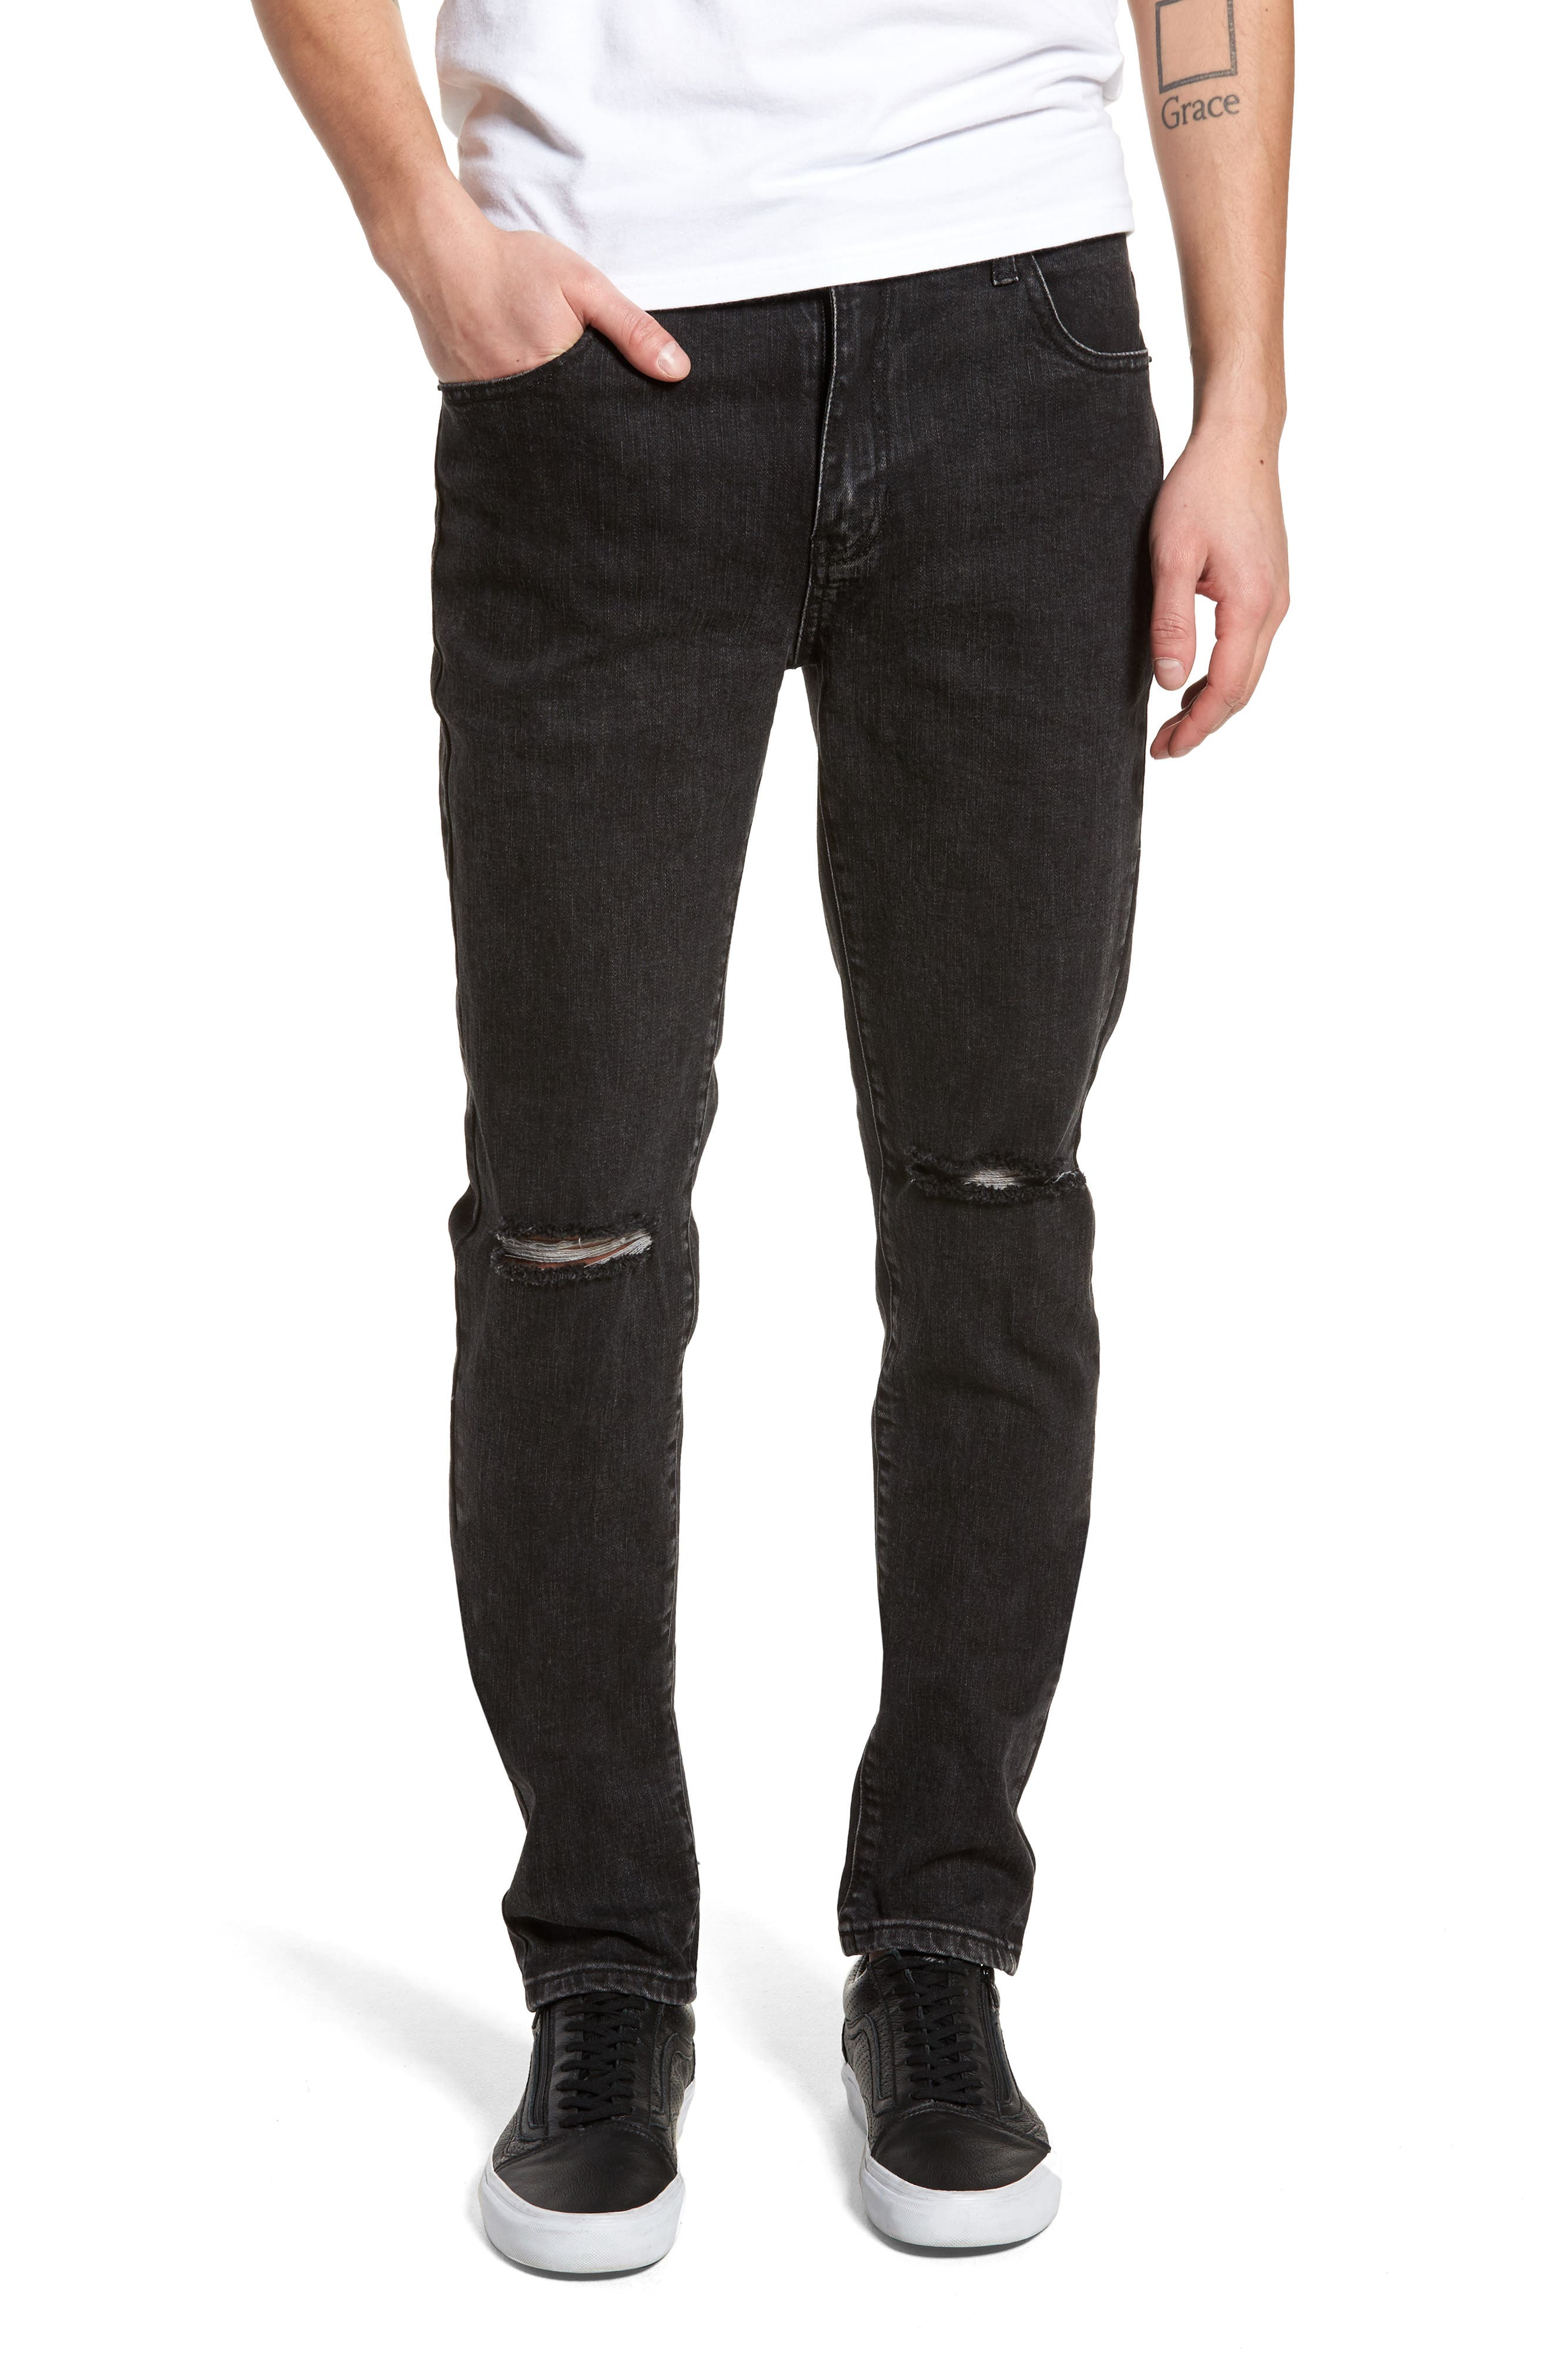 Baxter Ripped Jeans,                             Main thumbnail 1, color,                             001